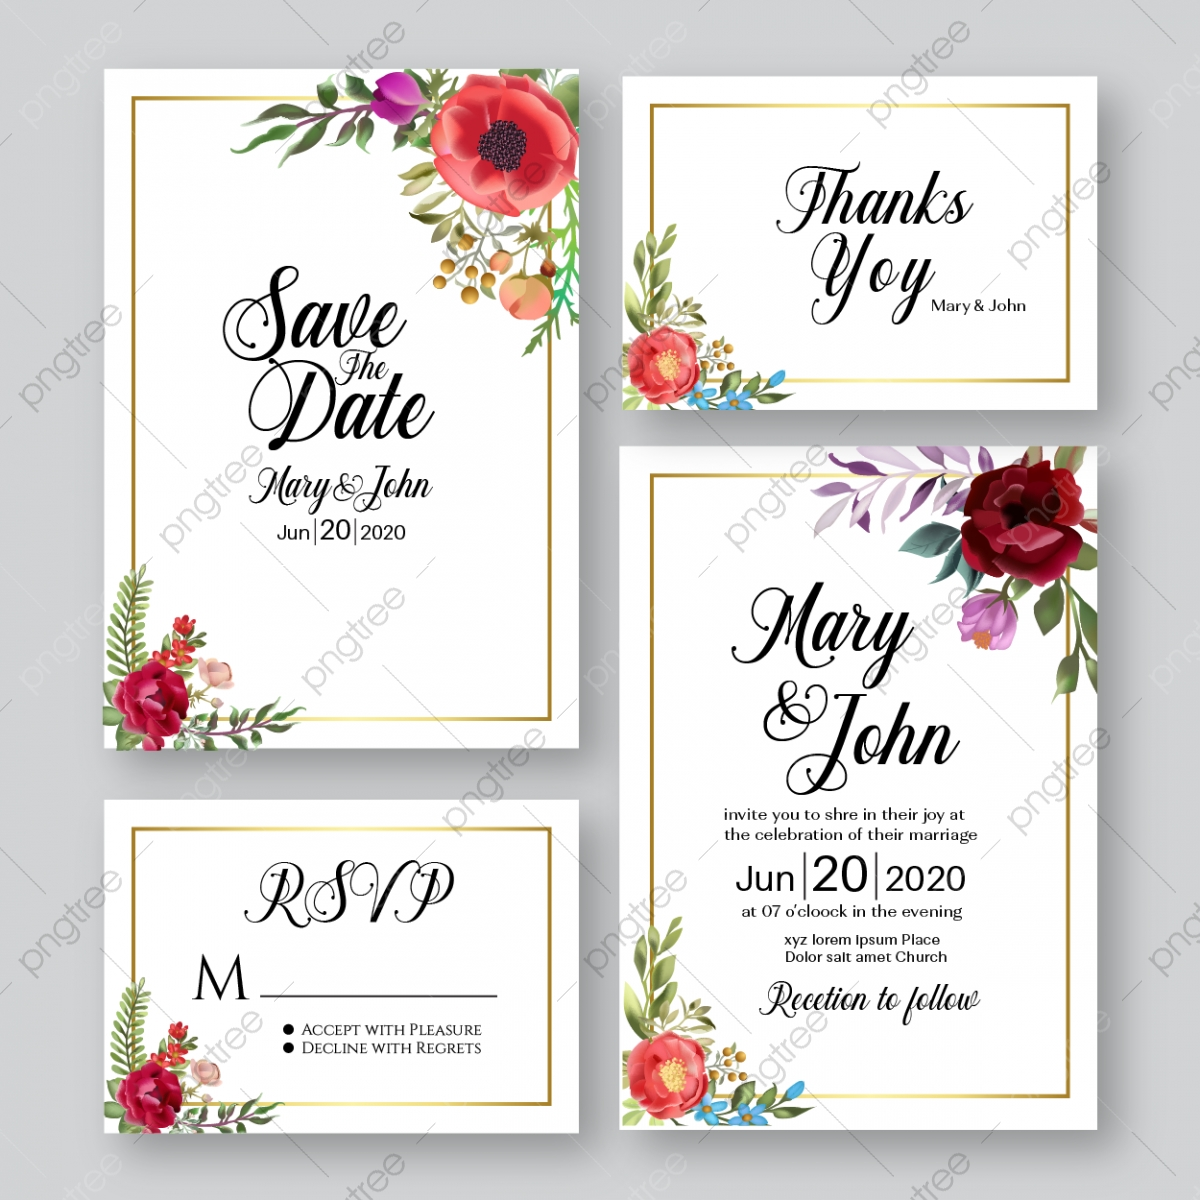 https pngtree com freepng watercolor wedding invitation card template 5008023 html